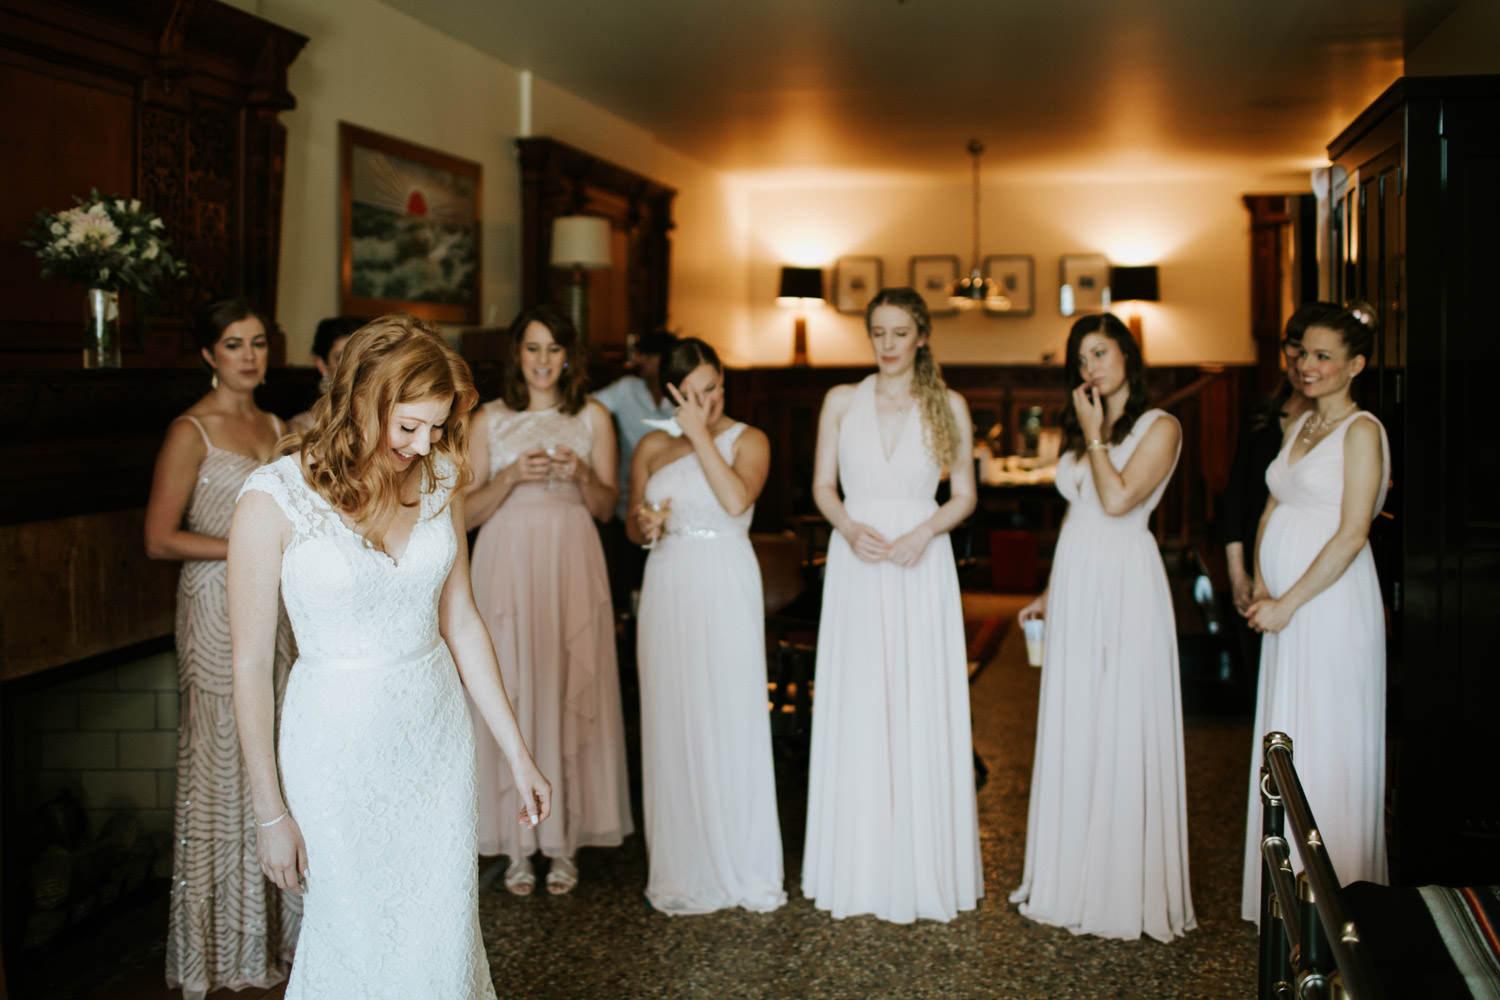 the photo of the bride and bridesmaids taken at Chicago Athletic Association hotel